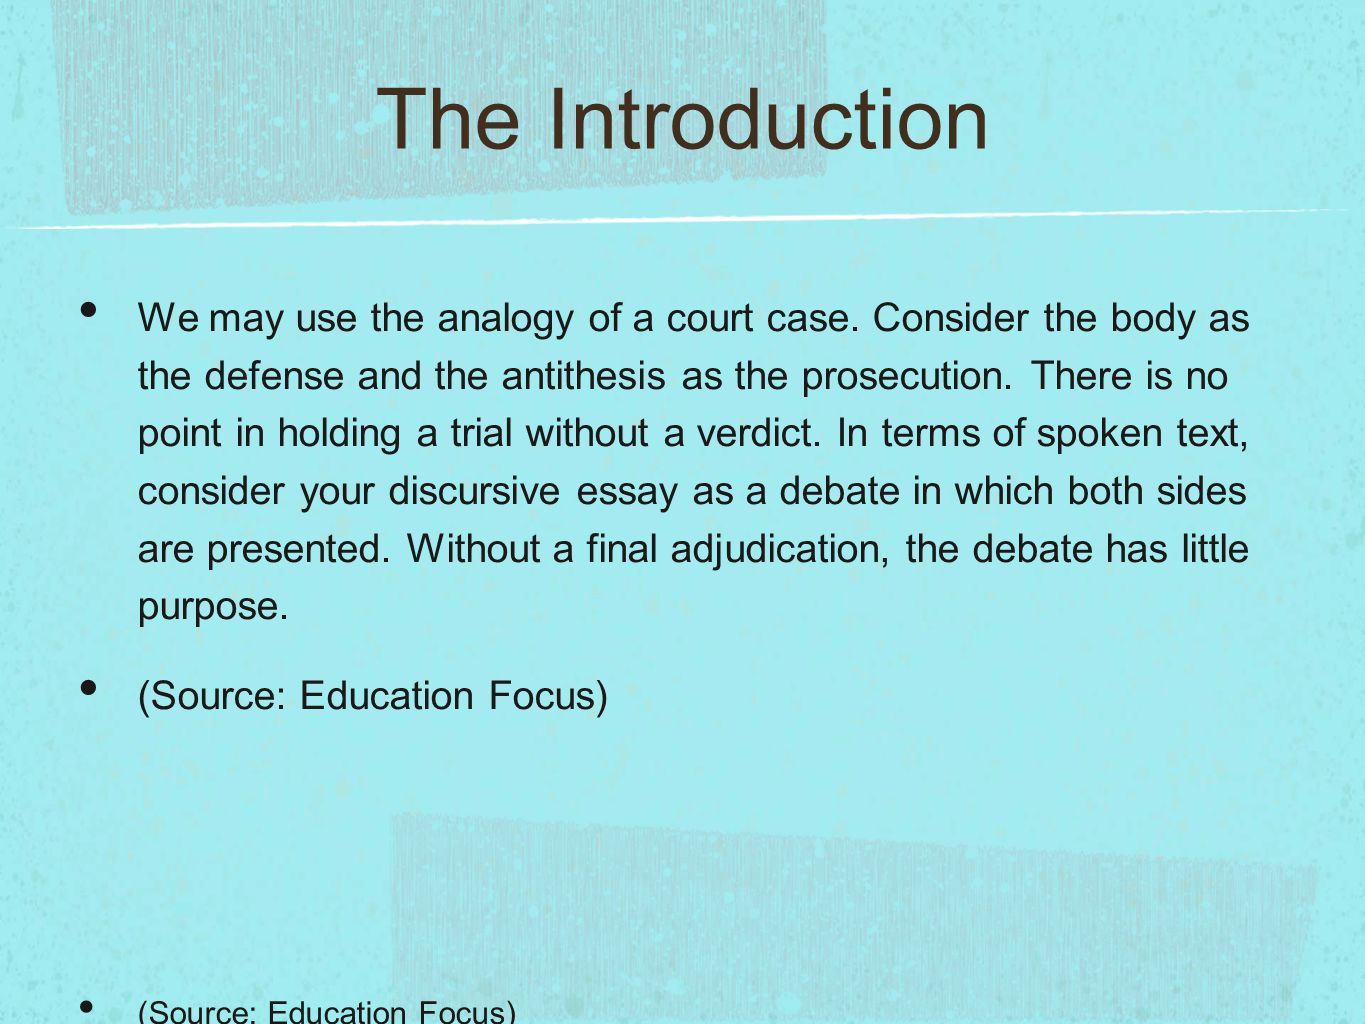 The Introduction We may use the analogy of a court case. Consider the body as the defense and the antithesis as the prosecution. There is no point in